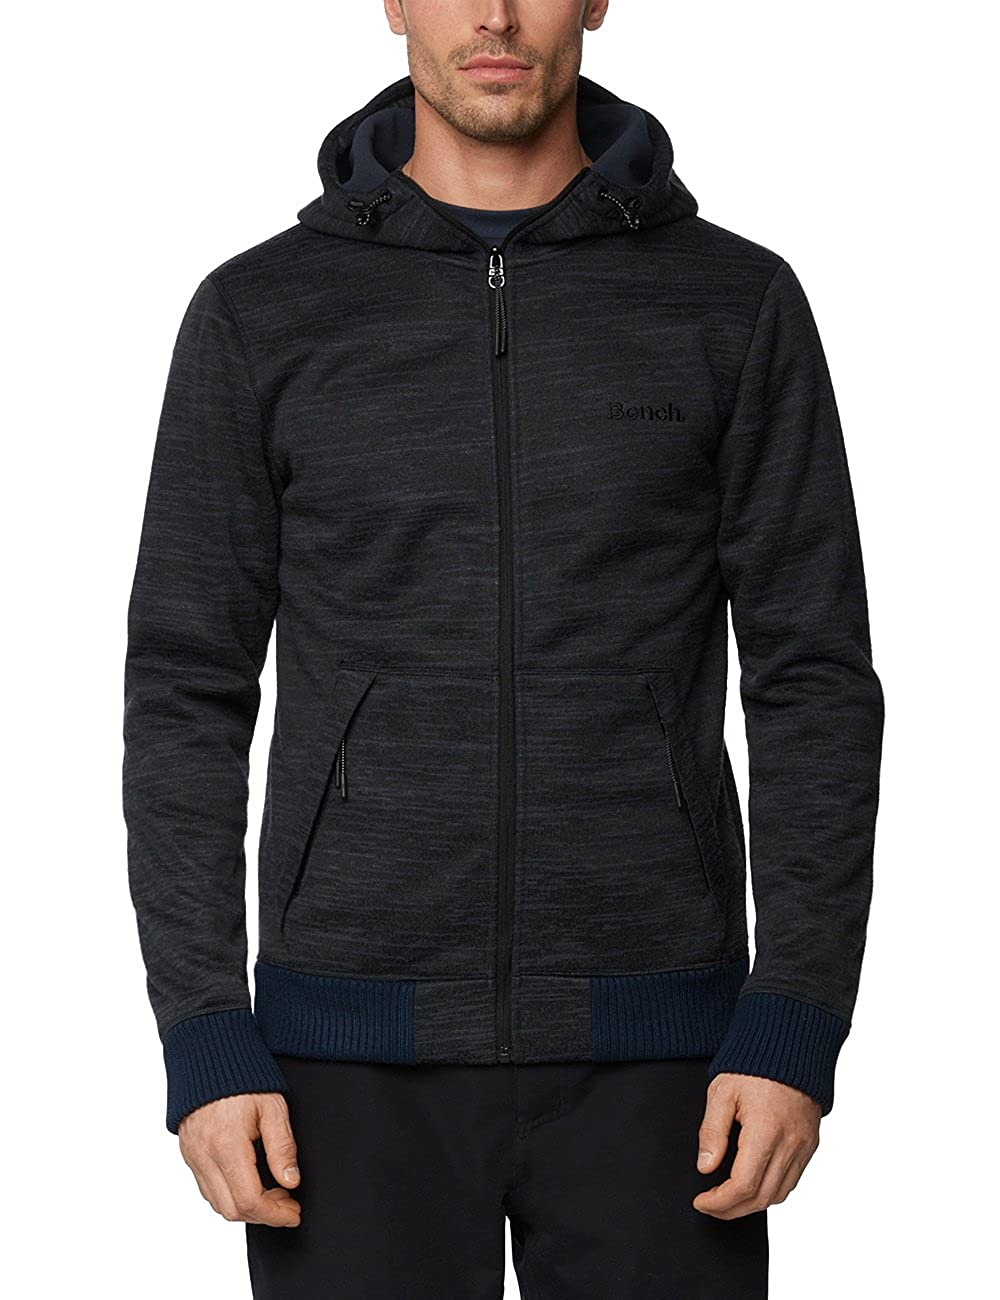 Bench Men's Hoody Bomber Jumper BPMF000031